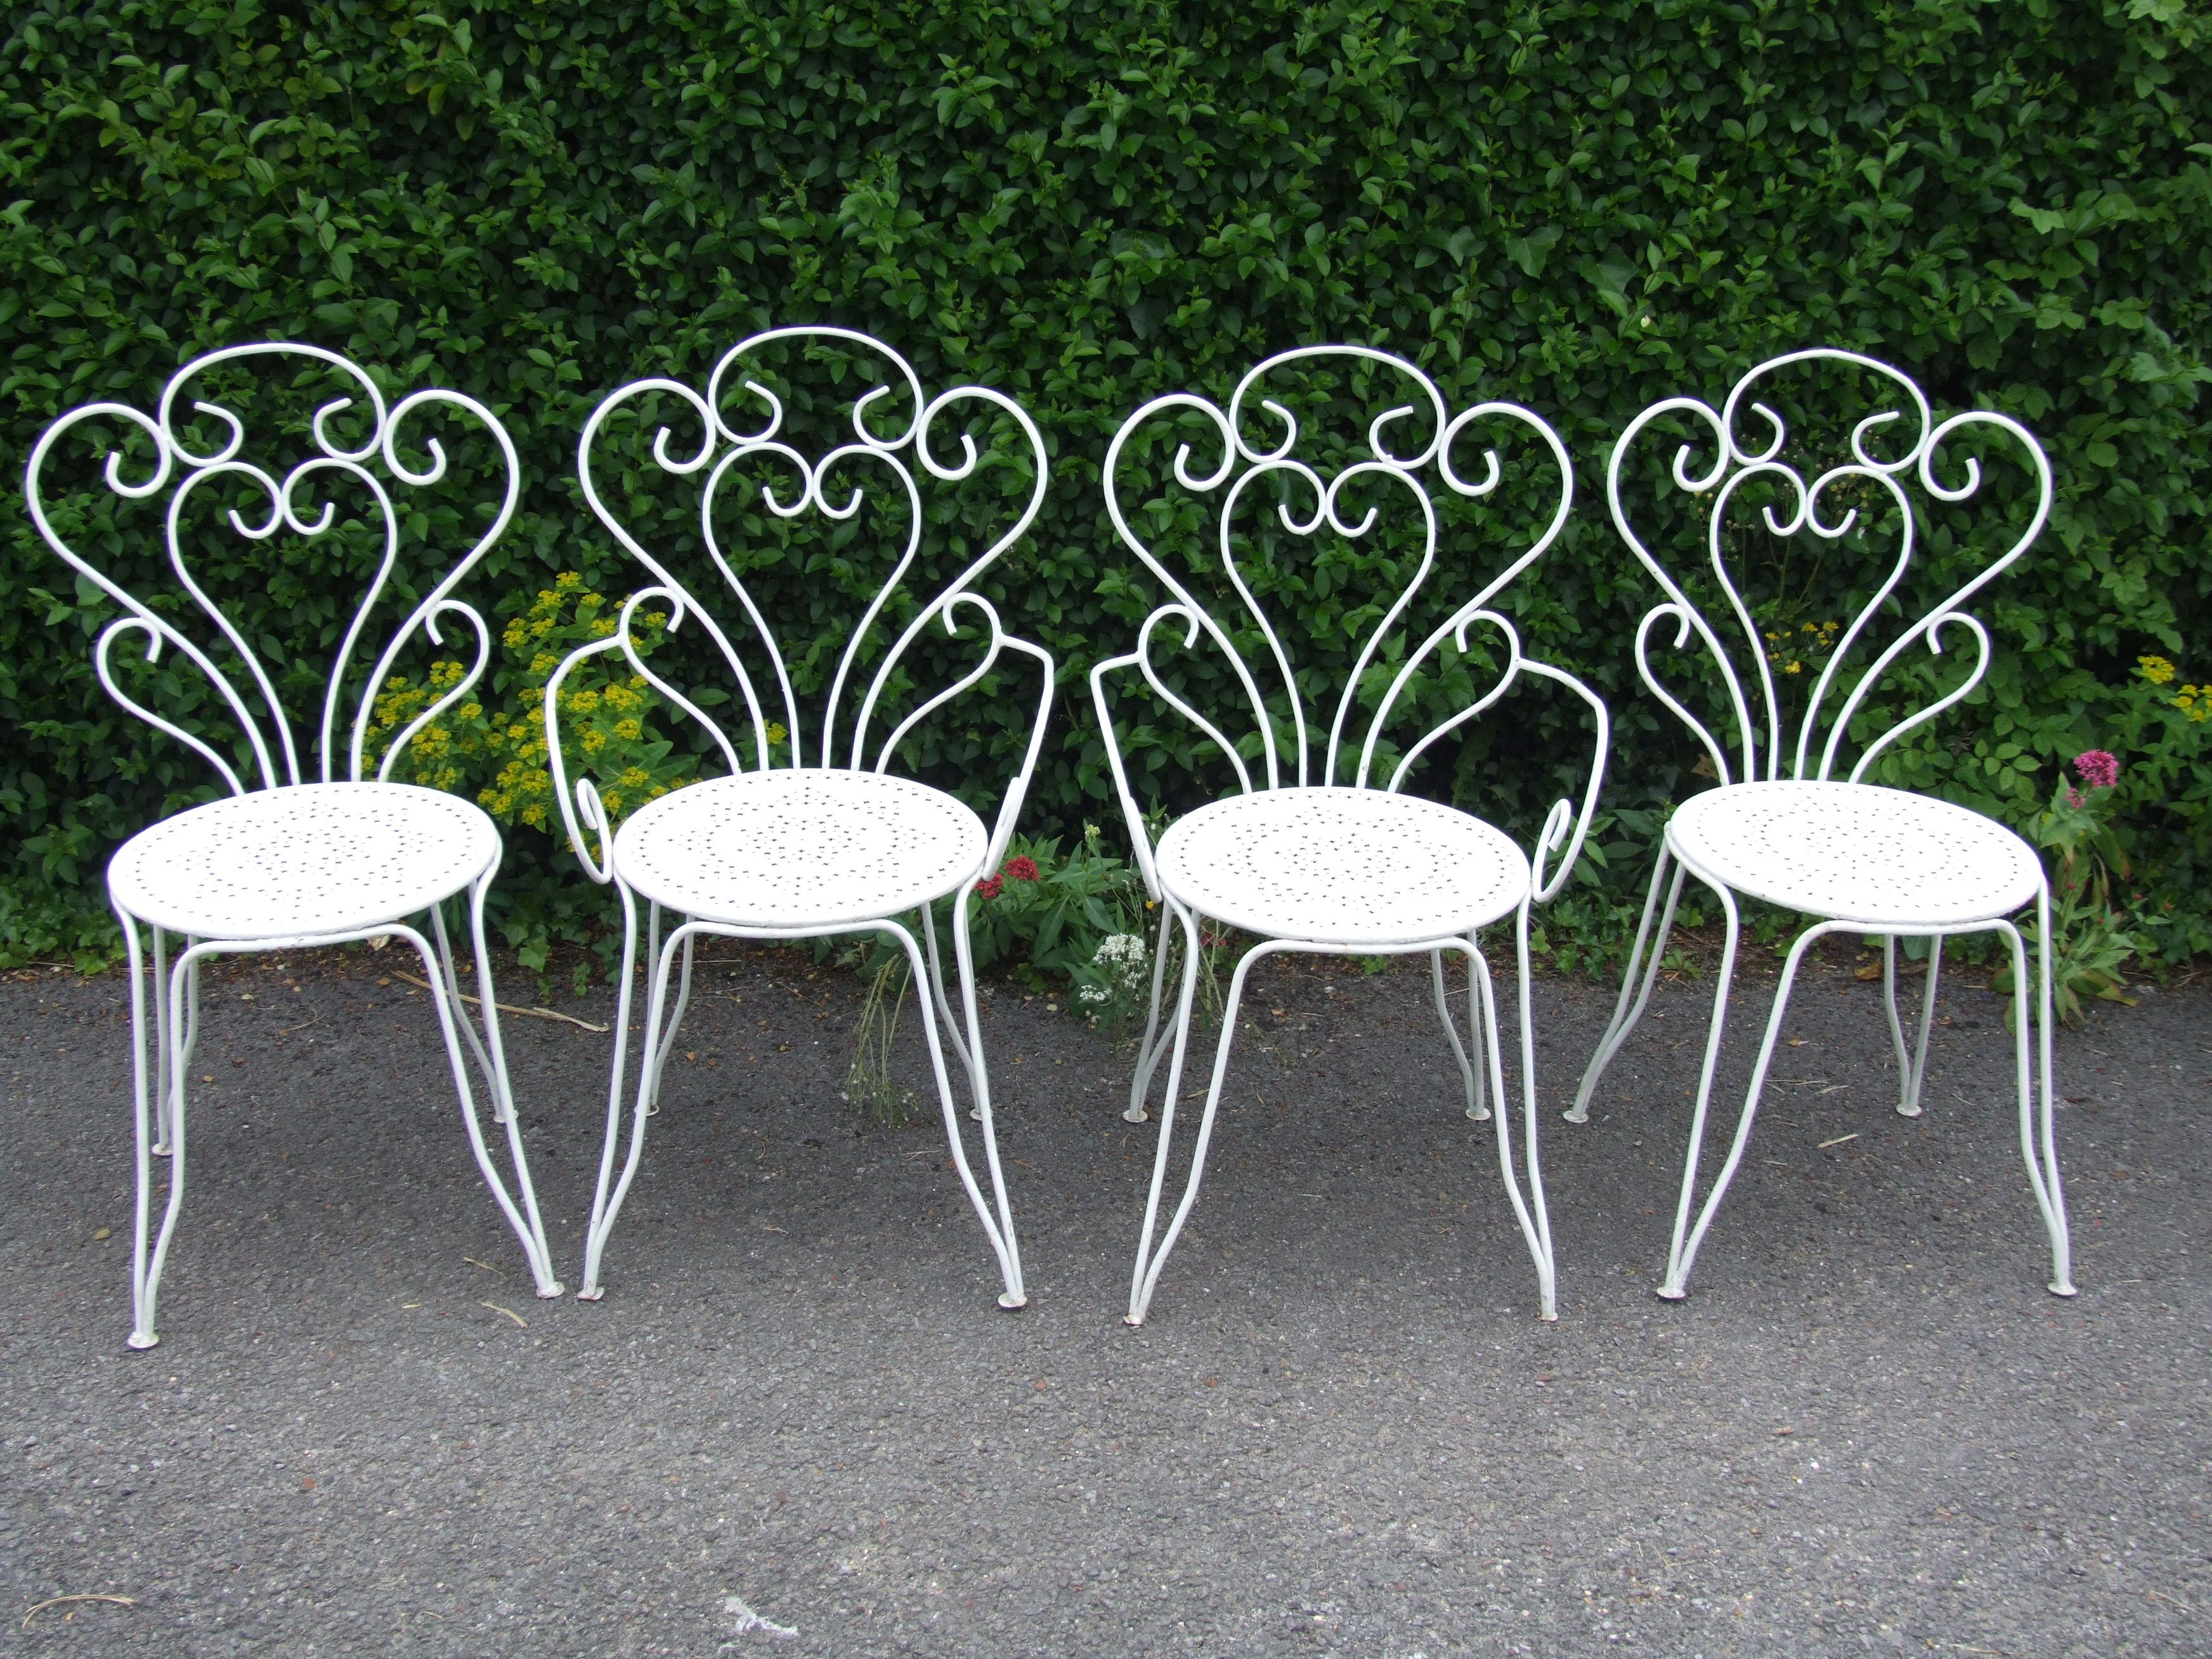 furniture garden chair furniture vintage white outdoor. Black Bedroom Furniture Sets. Home Design Ideas